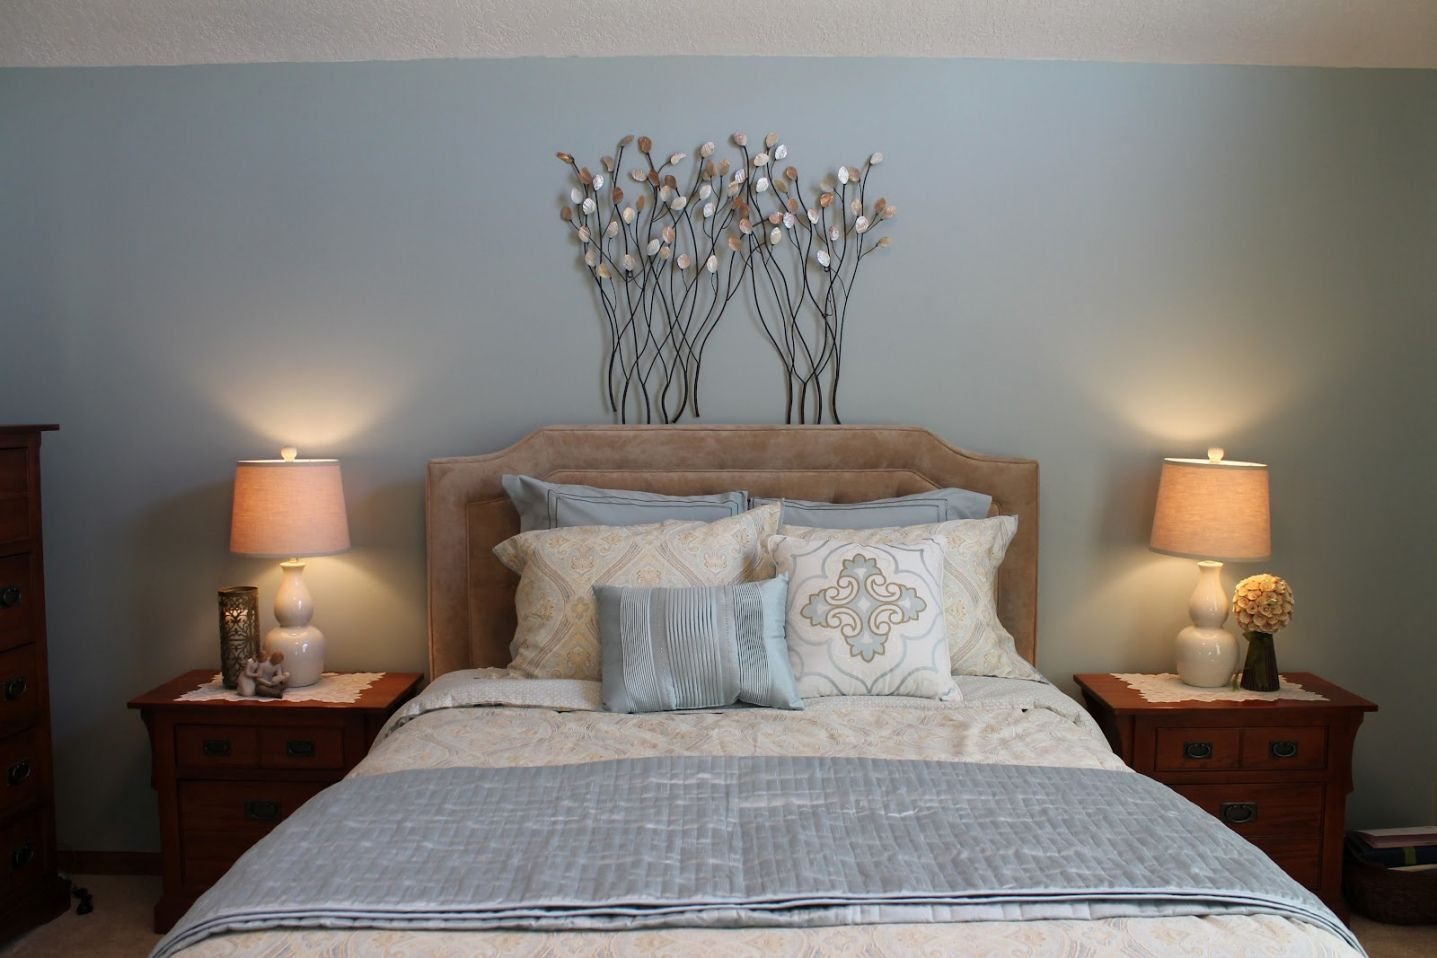 Most Soothing Colors For Bedroom Decorating Ideas On A Budget Check More At Http